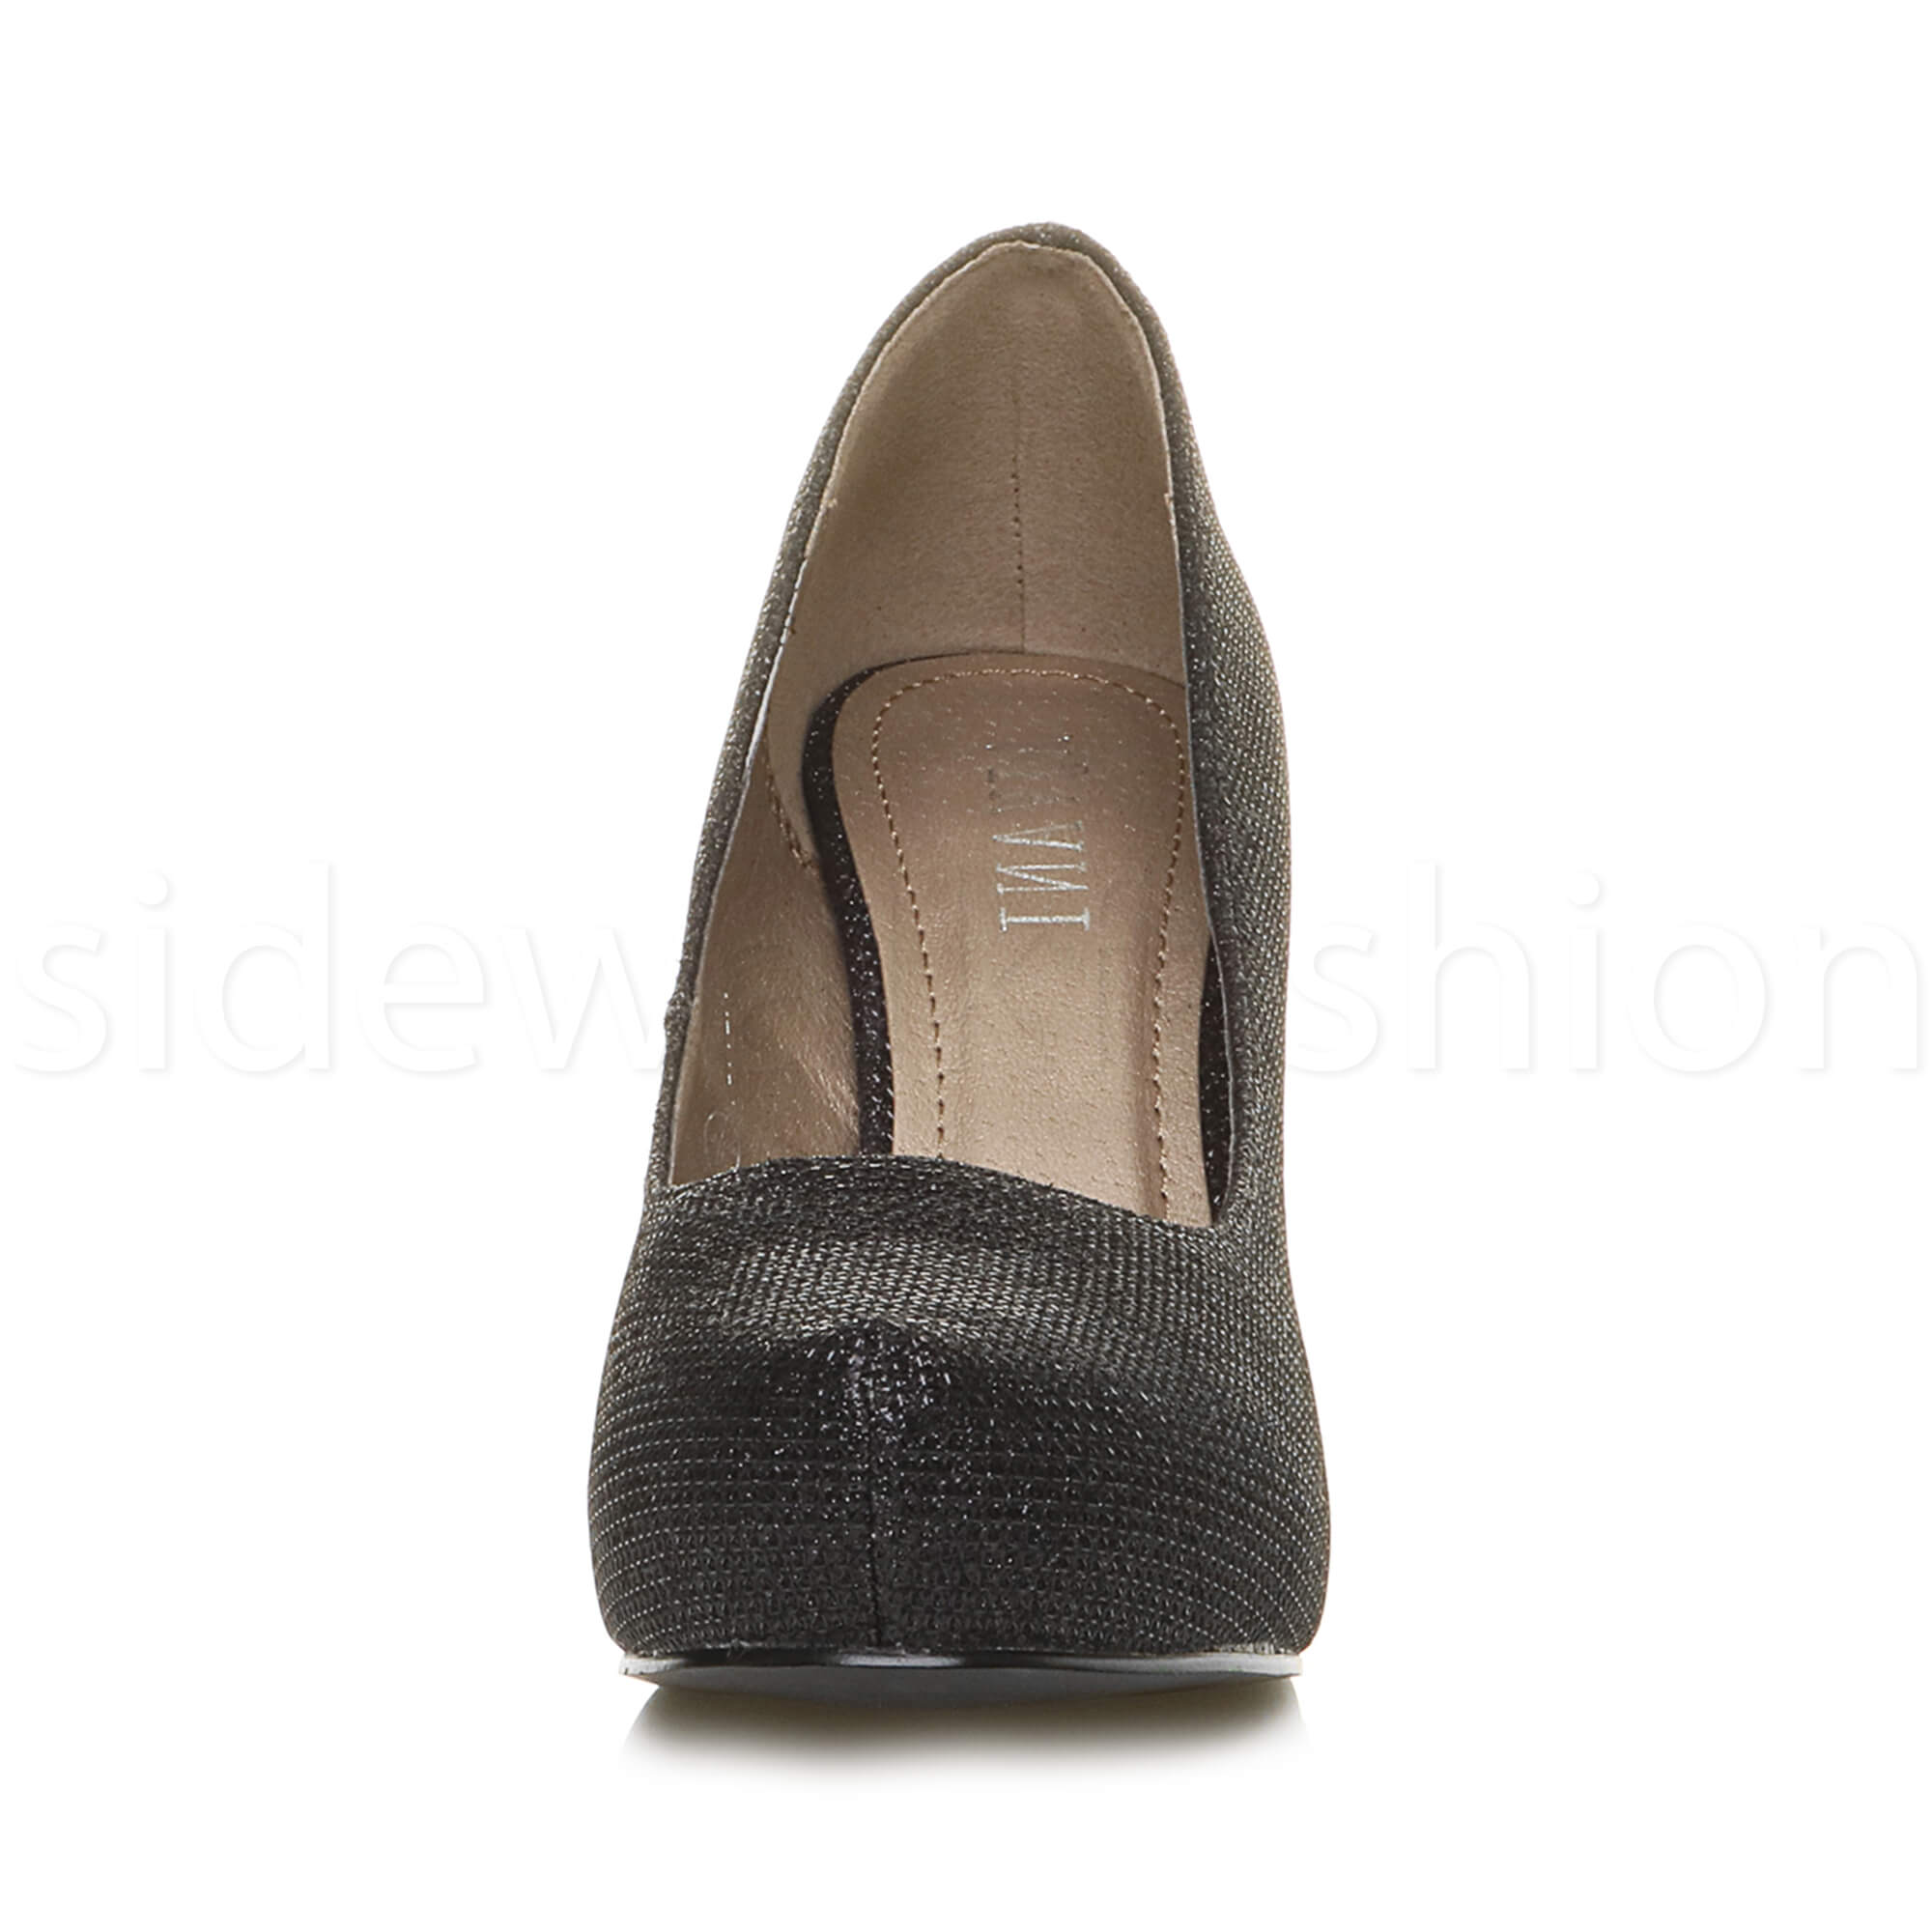 Womens-ladies-low-mid-heel-concealed-platform-work-party-court-shoes-pumps-size thumbnail 13